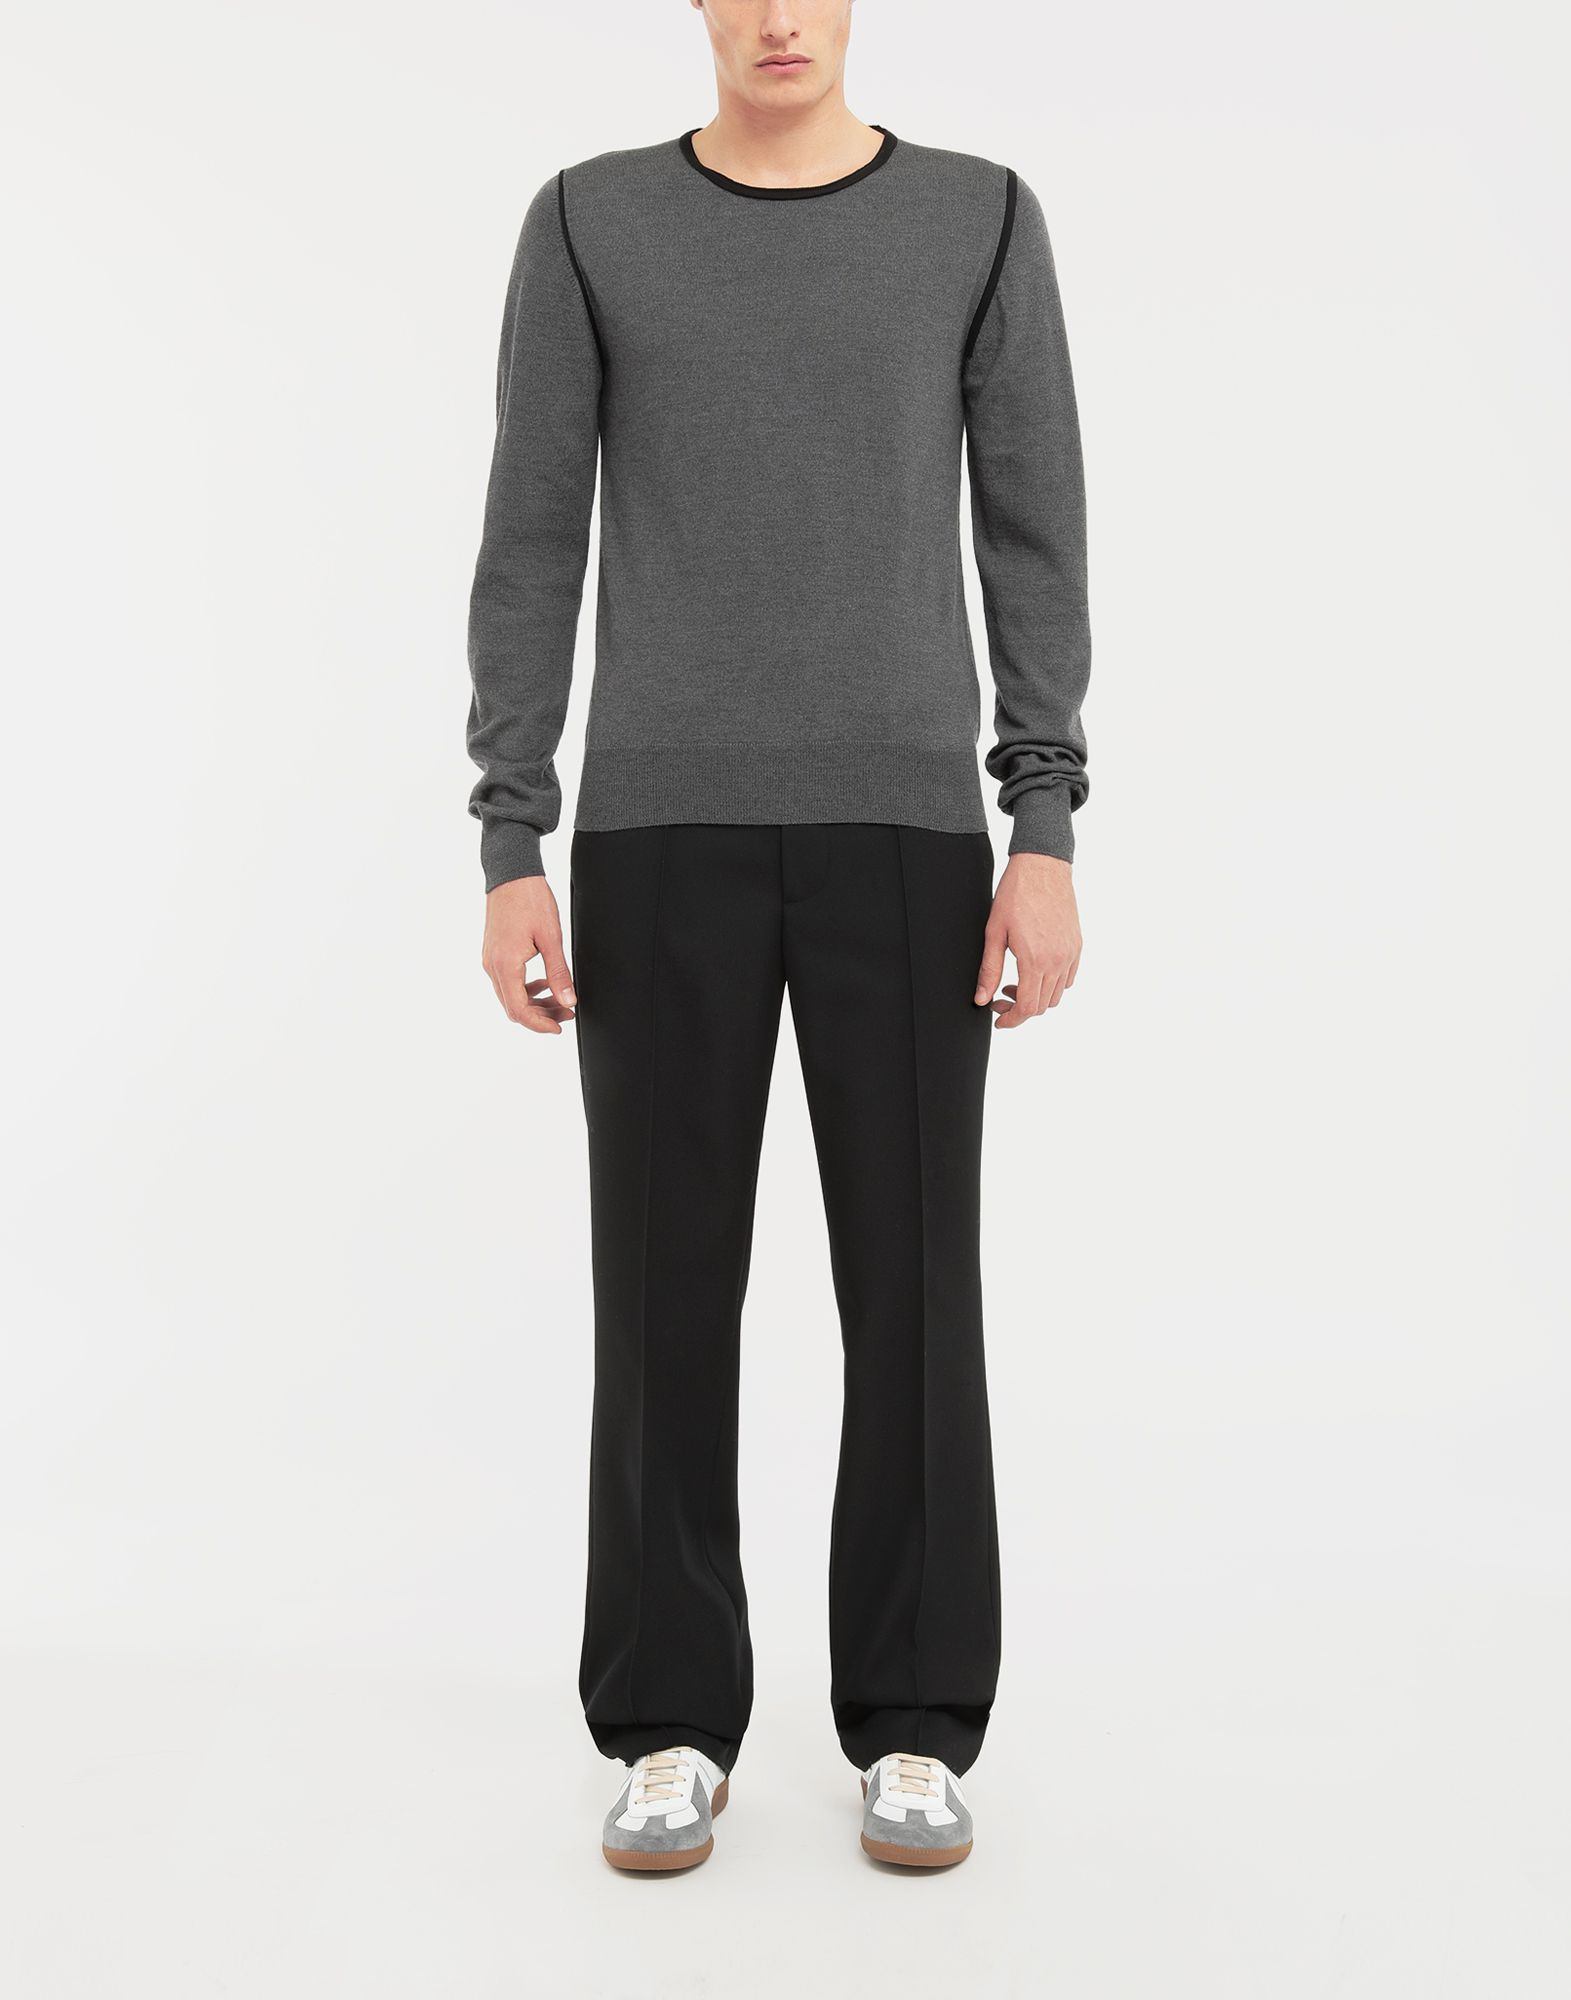 MAISON MARGIELA Cotton-trimmed knit jersey pullover Crewneck sweater Man d